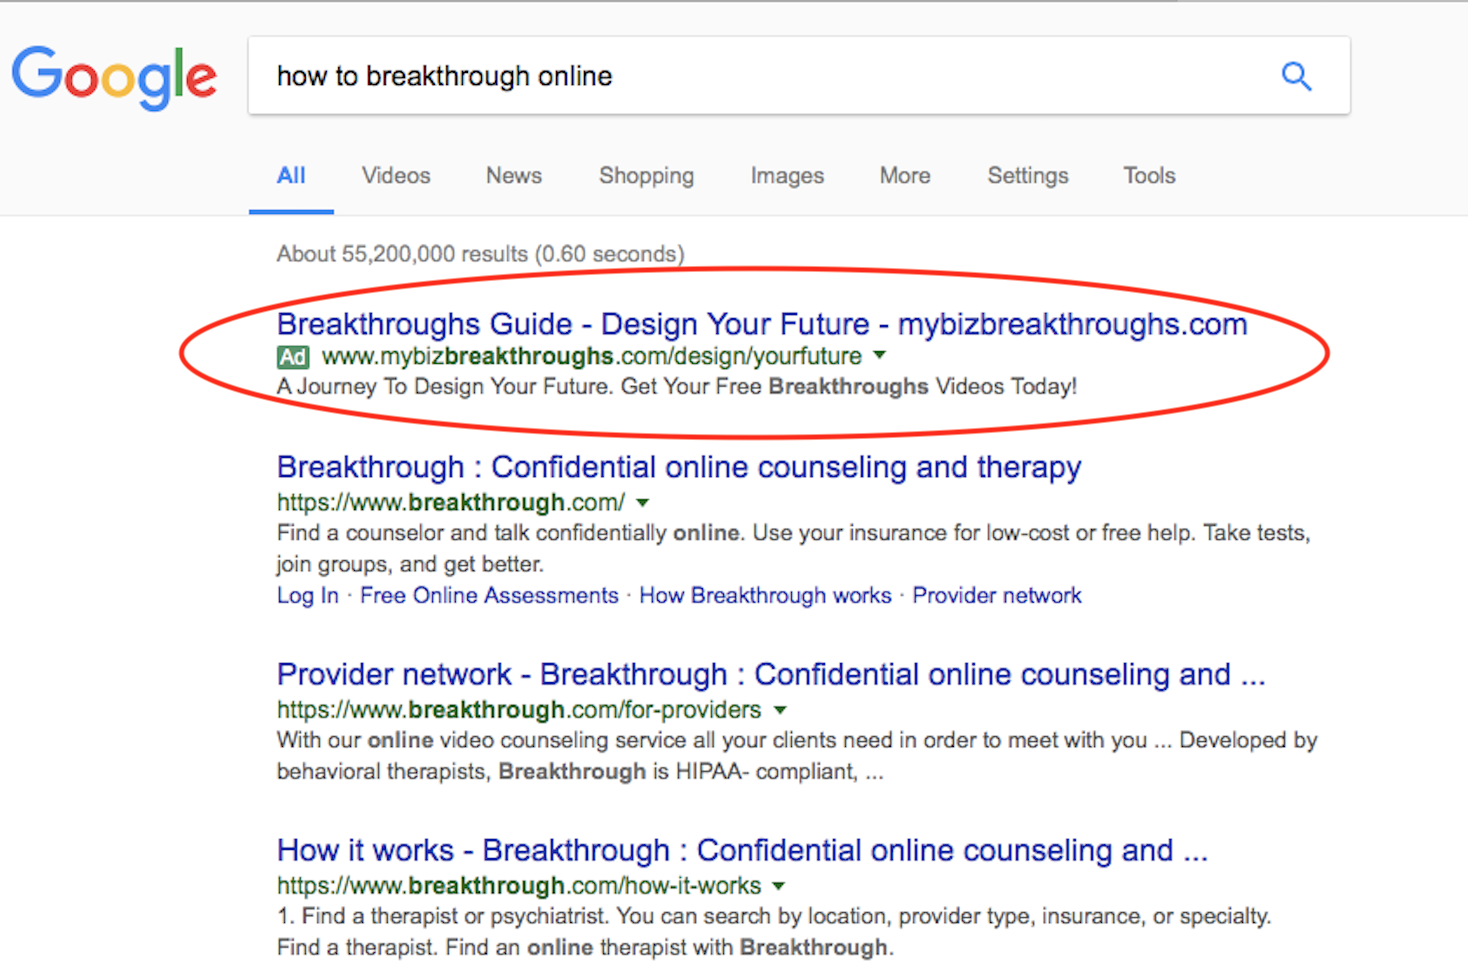 What is Google Search Network & How To Use It For Business